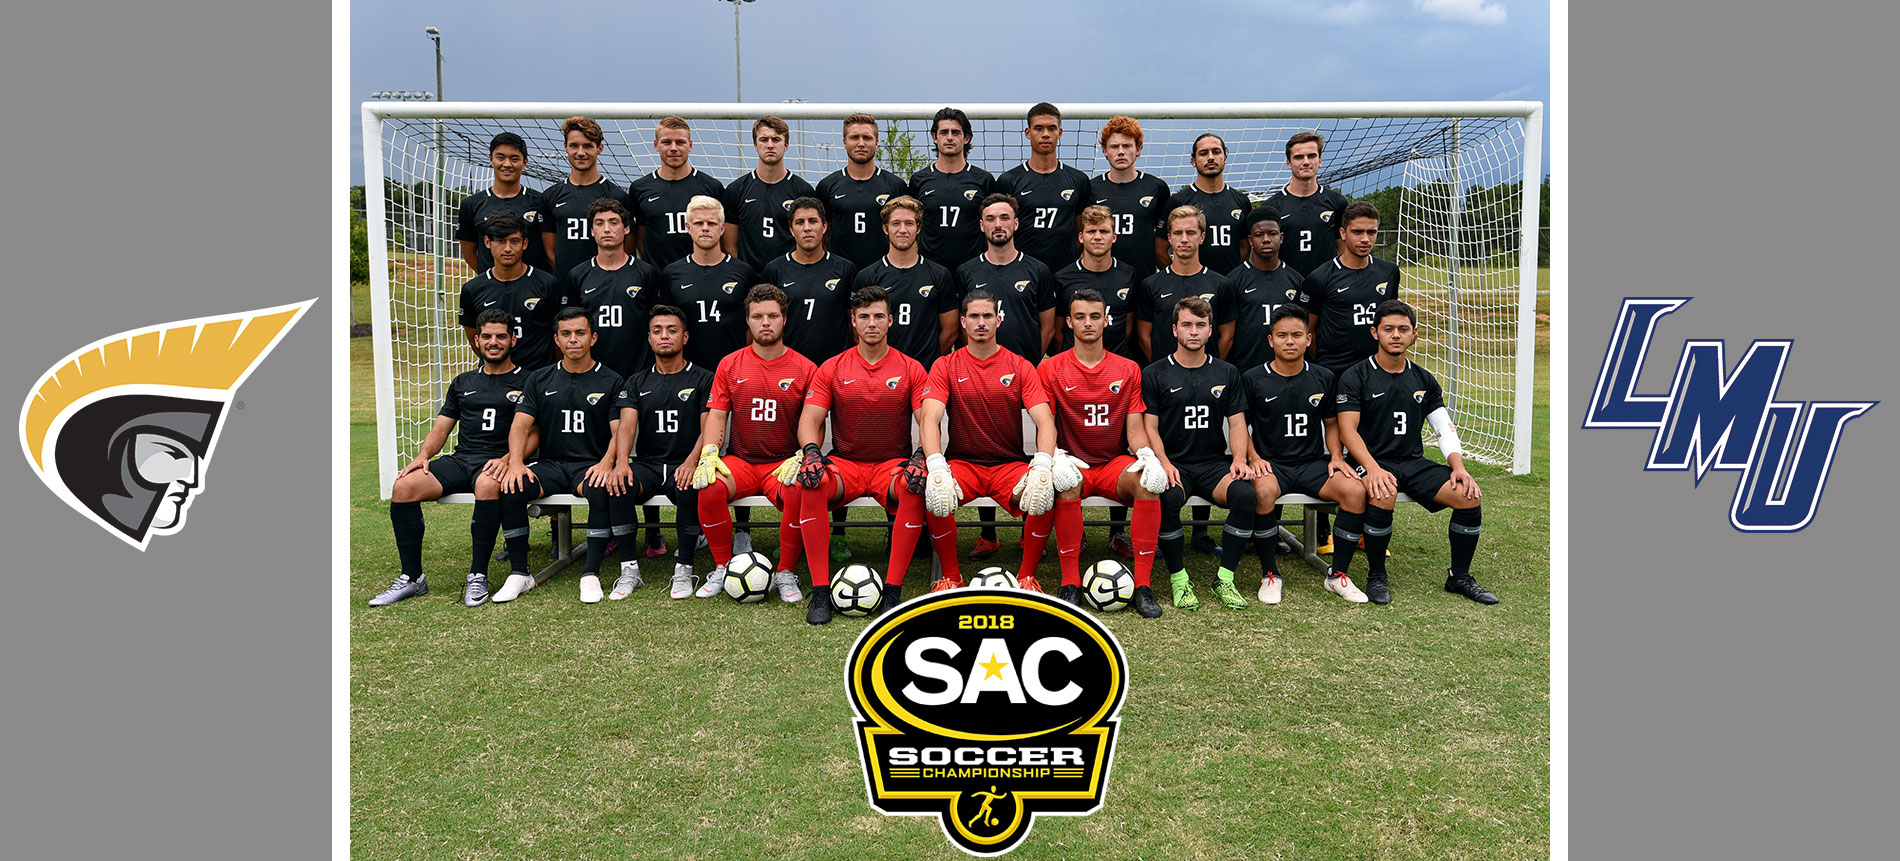 No. 4 Trojans Set to Host No. 5 Lincoln Memorial in Opening Round of the SAC Championship